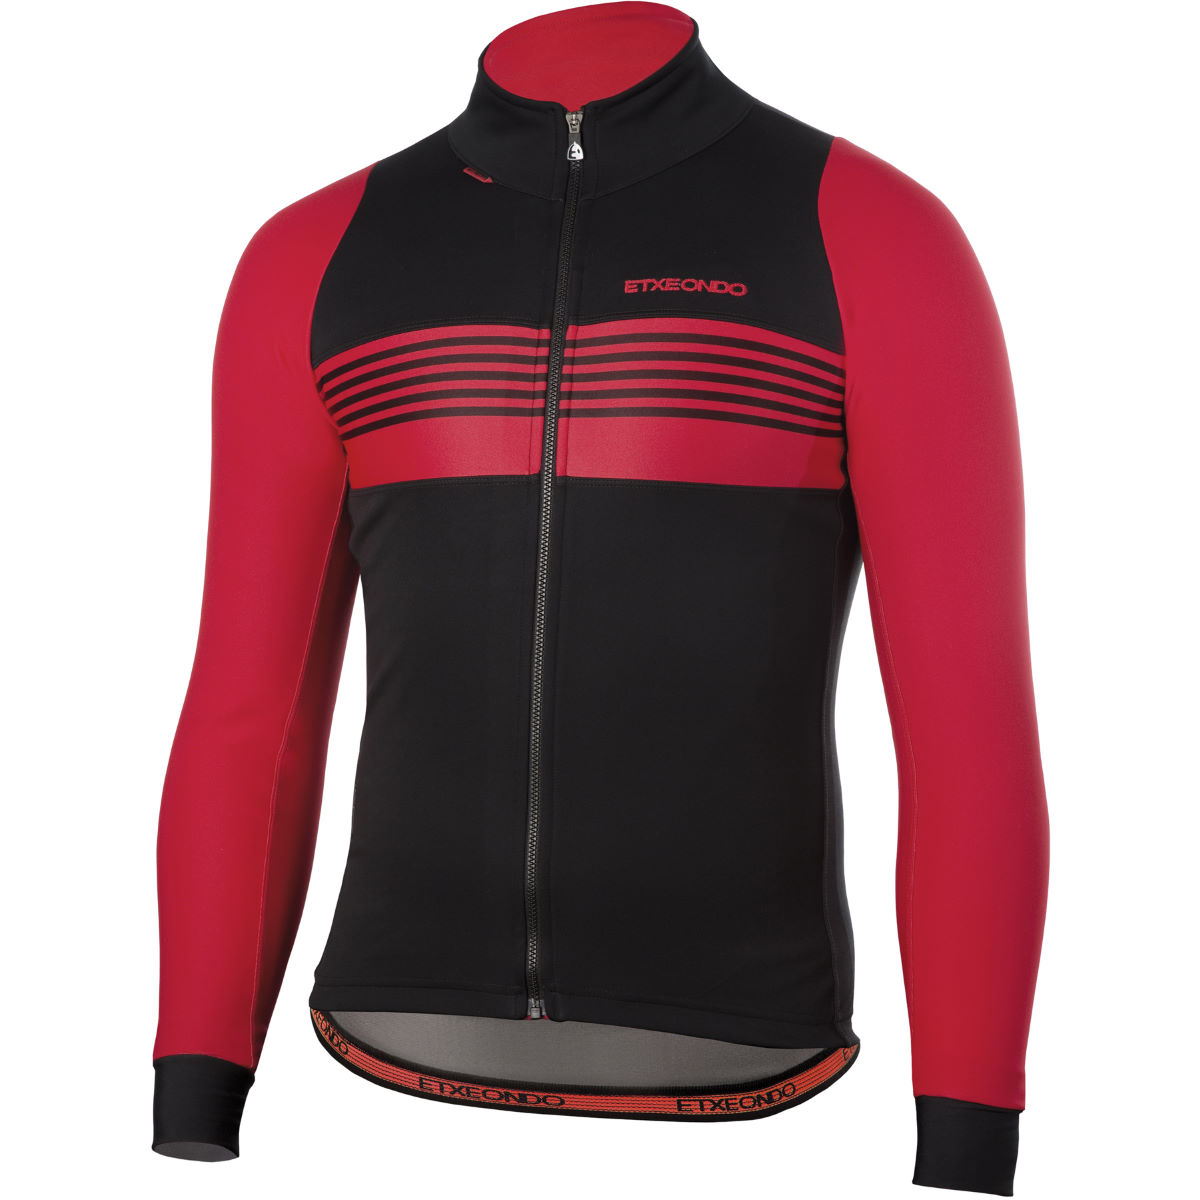 Veste Etxeondo Aldapa Windstopper - 3XL Noir/Rouge Coupe-vents vélo